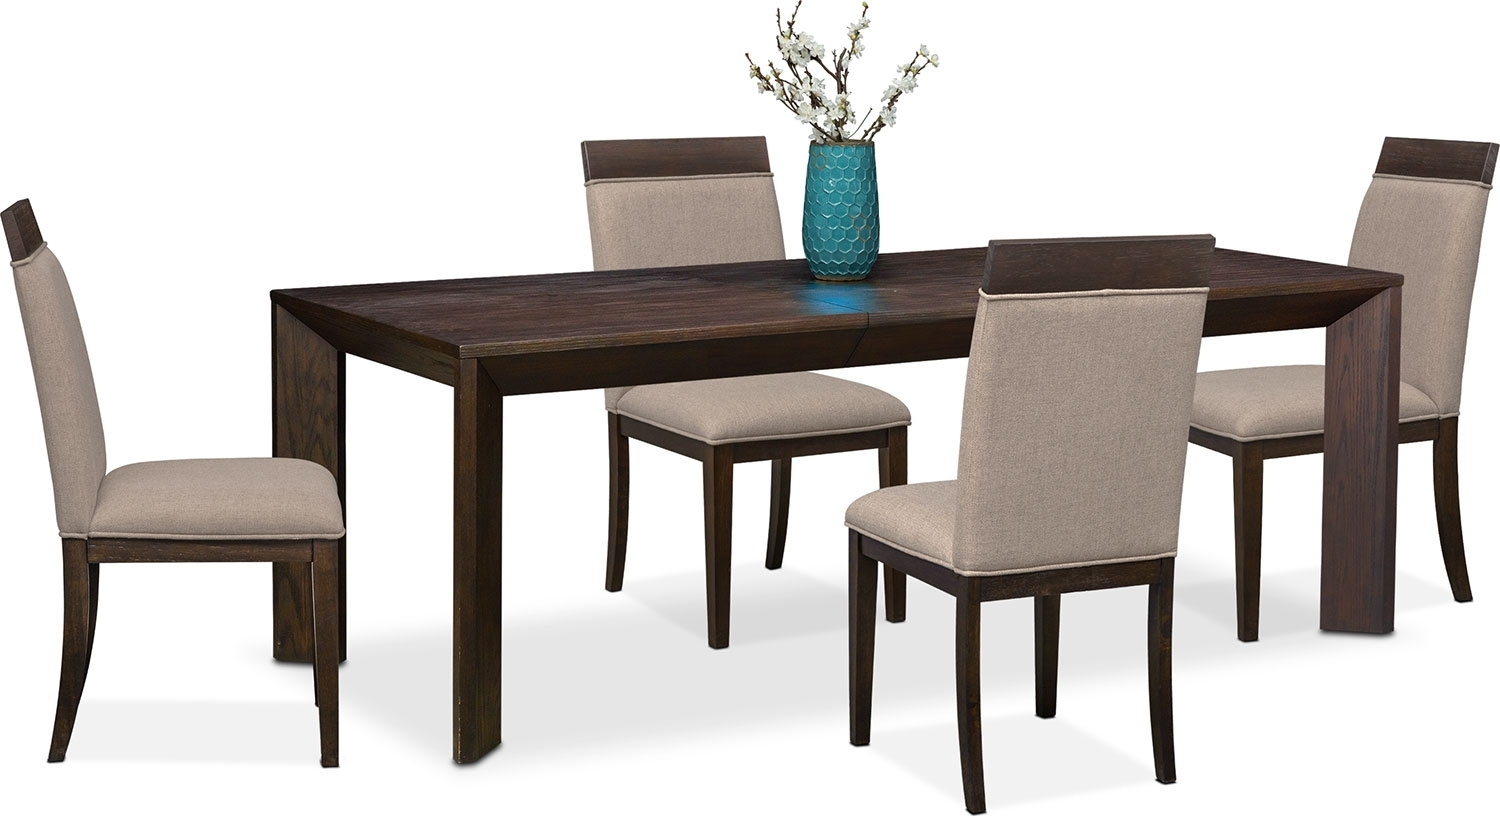 Gavin Table And 4 Side Chairs – Brownstone | Value City Furniture Throughout Current Gavin 7 Piece Dining Sets With Clint Side Chairs (Photo 4 of 20)